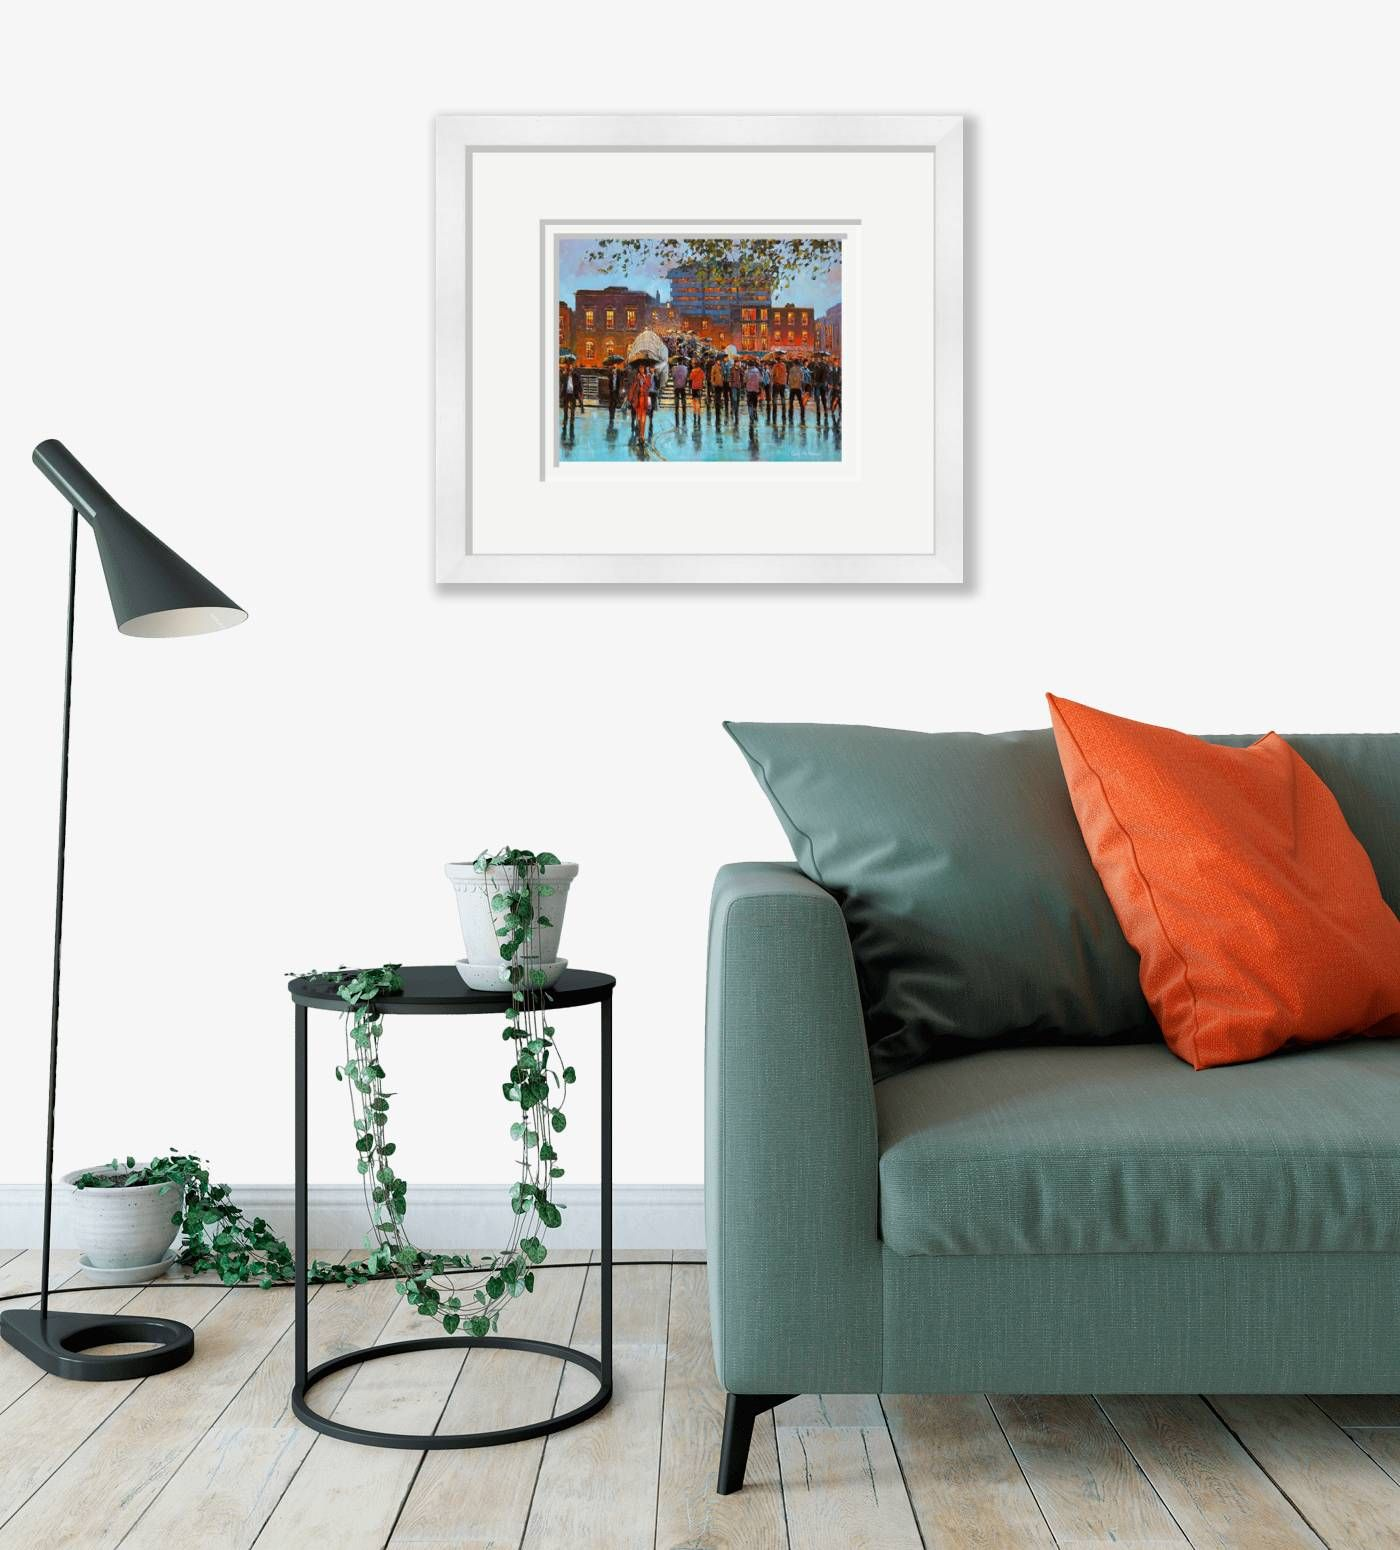 Large framed - Halfpenny Bridge, Reflections - 348 by Chris McMorrow